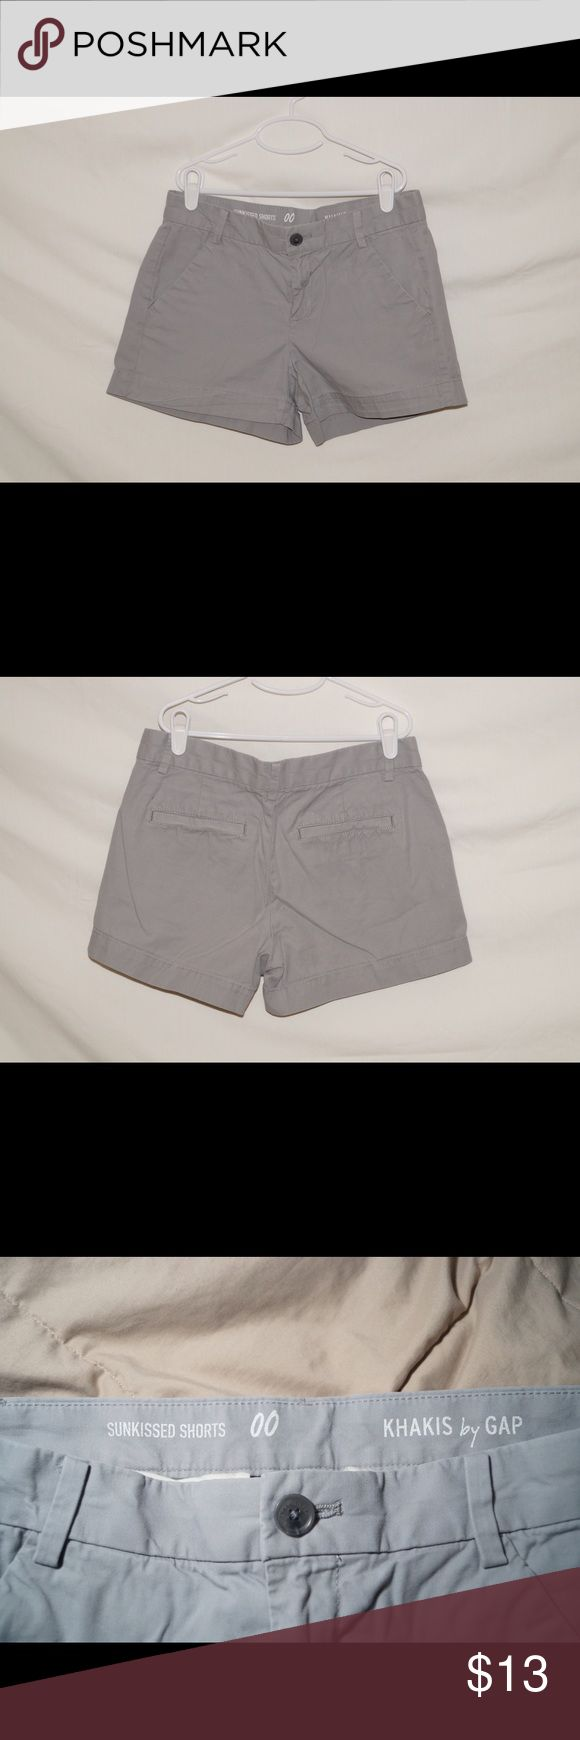 "GAP Women's Grey Khaki ""Sunkissed Shorts"" Gap grey khaki shorts, Women's size 00. Great condition. Feel free to ask any questions and I will do my best to answer!👍 GAP Shorts"